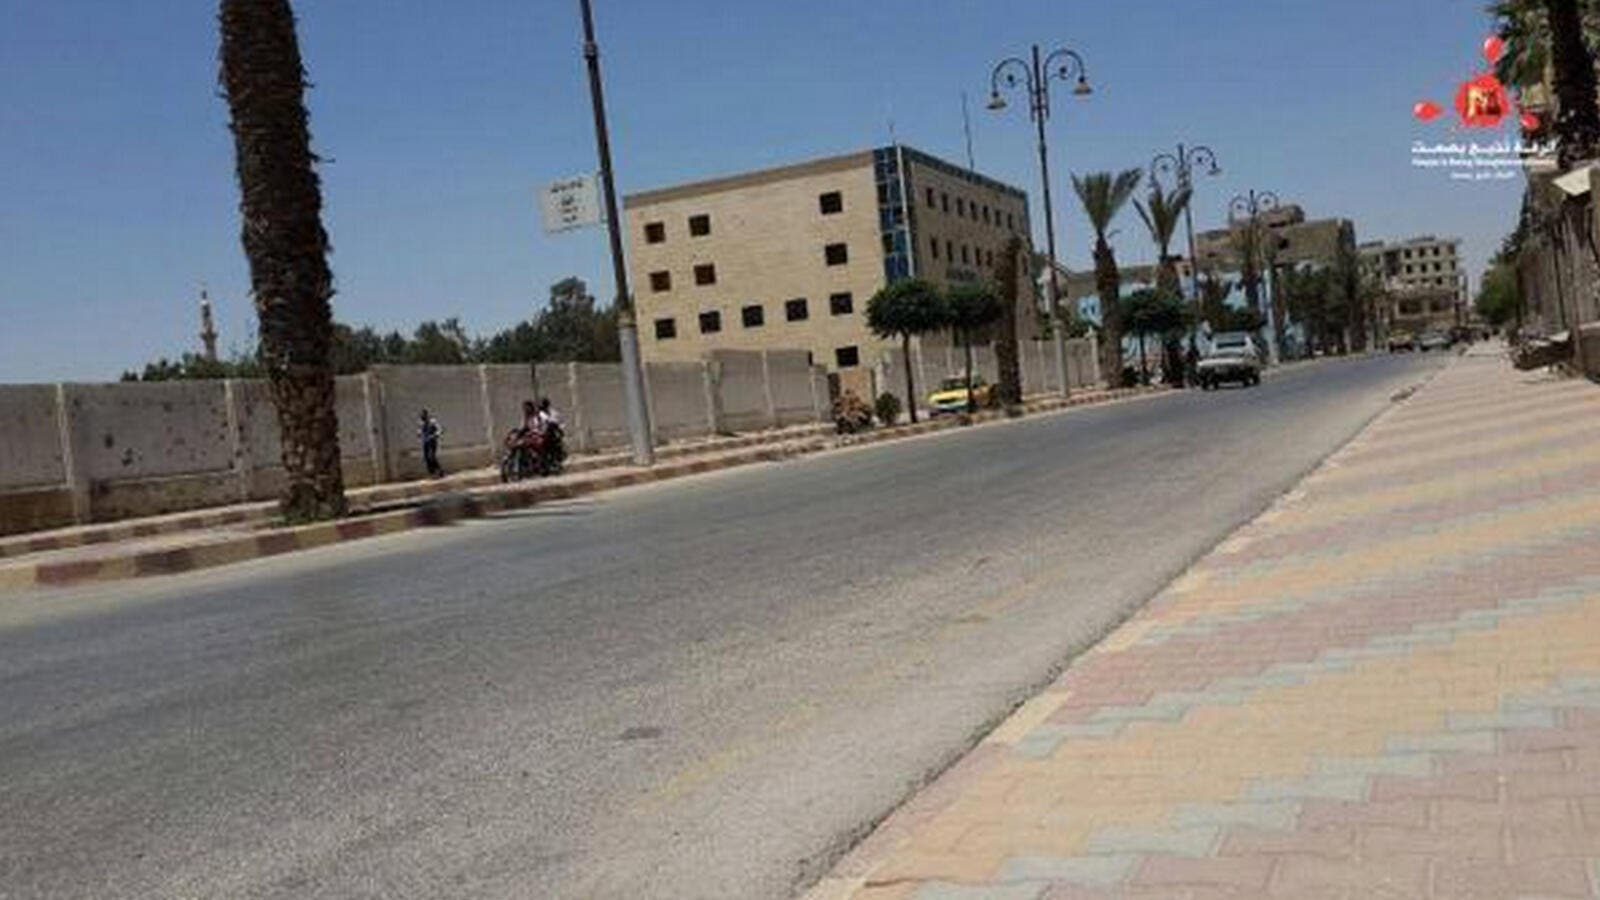 Raqqa Is Being Slaughtered Silently posted a photo on Twitter of empty streets in the provincial city under Daesh. (Twitter)